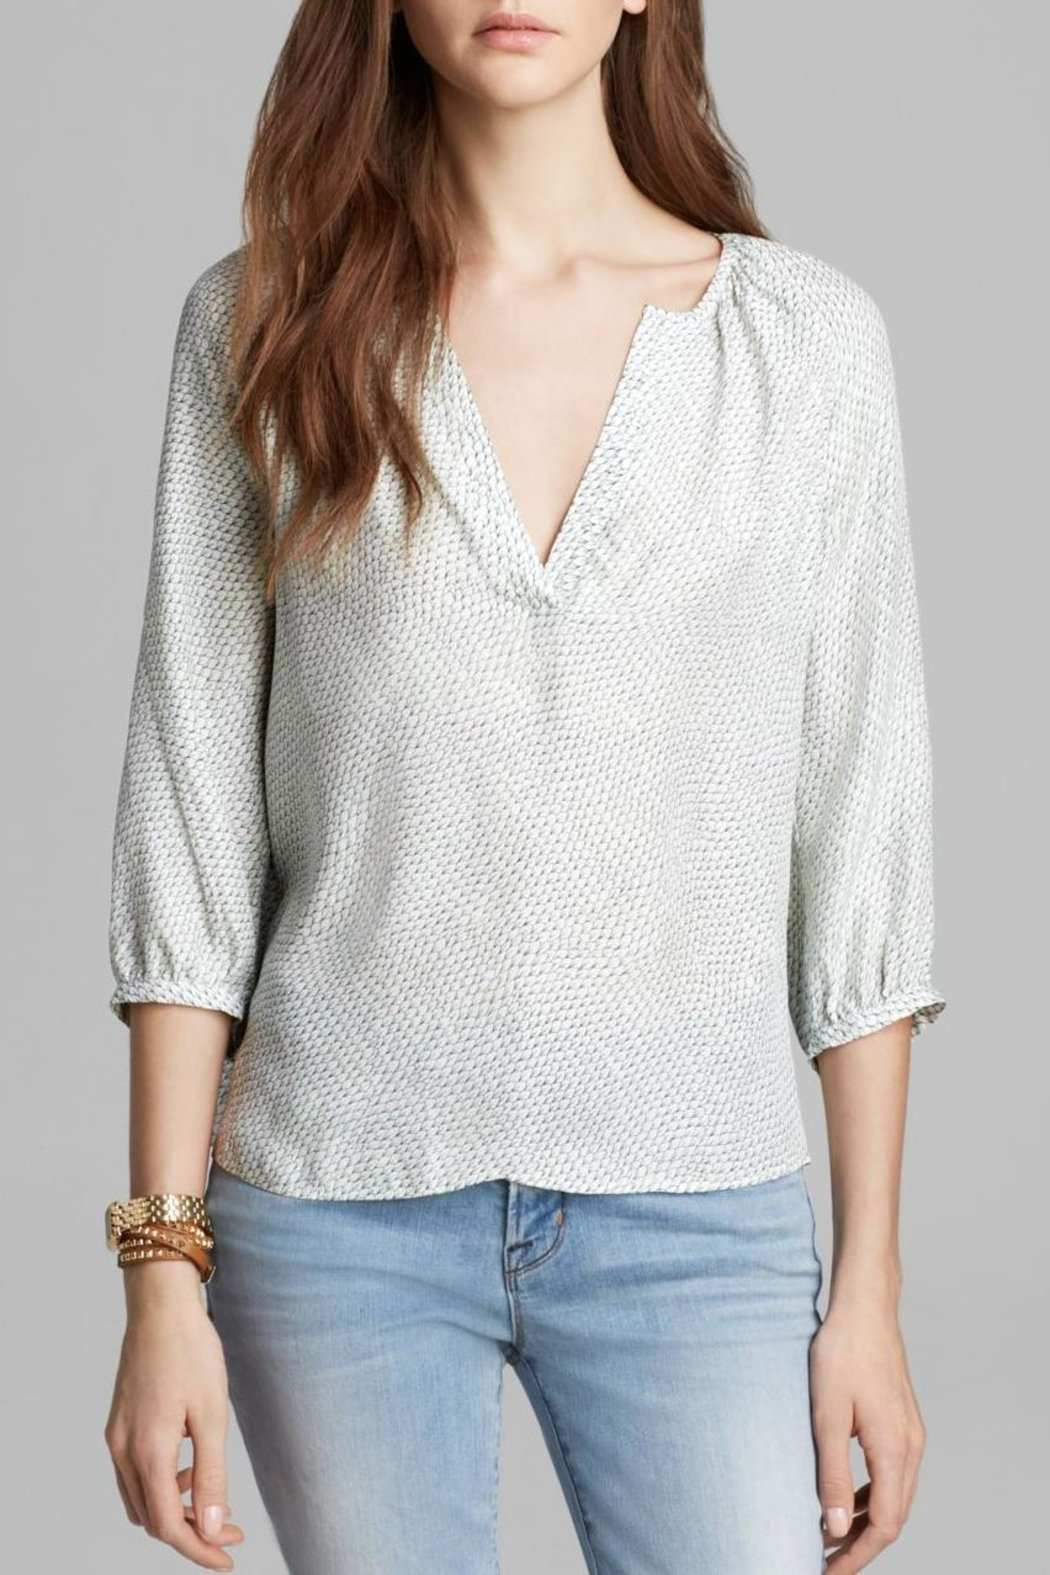 Joie Coralee Blouse - Main Image